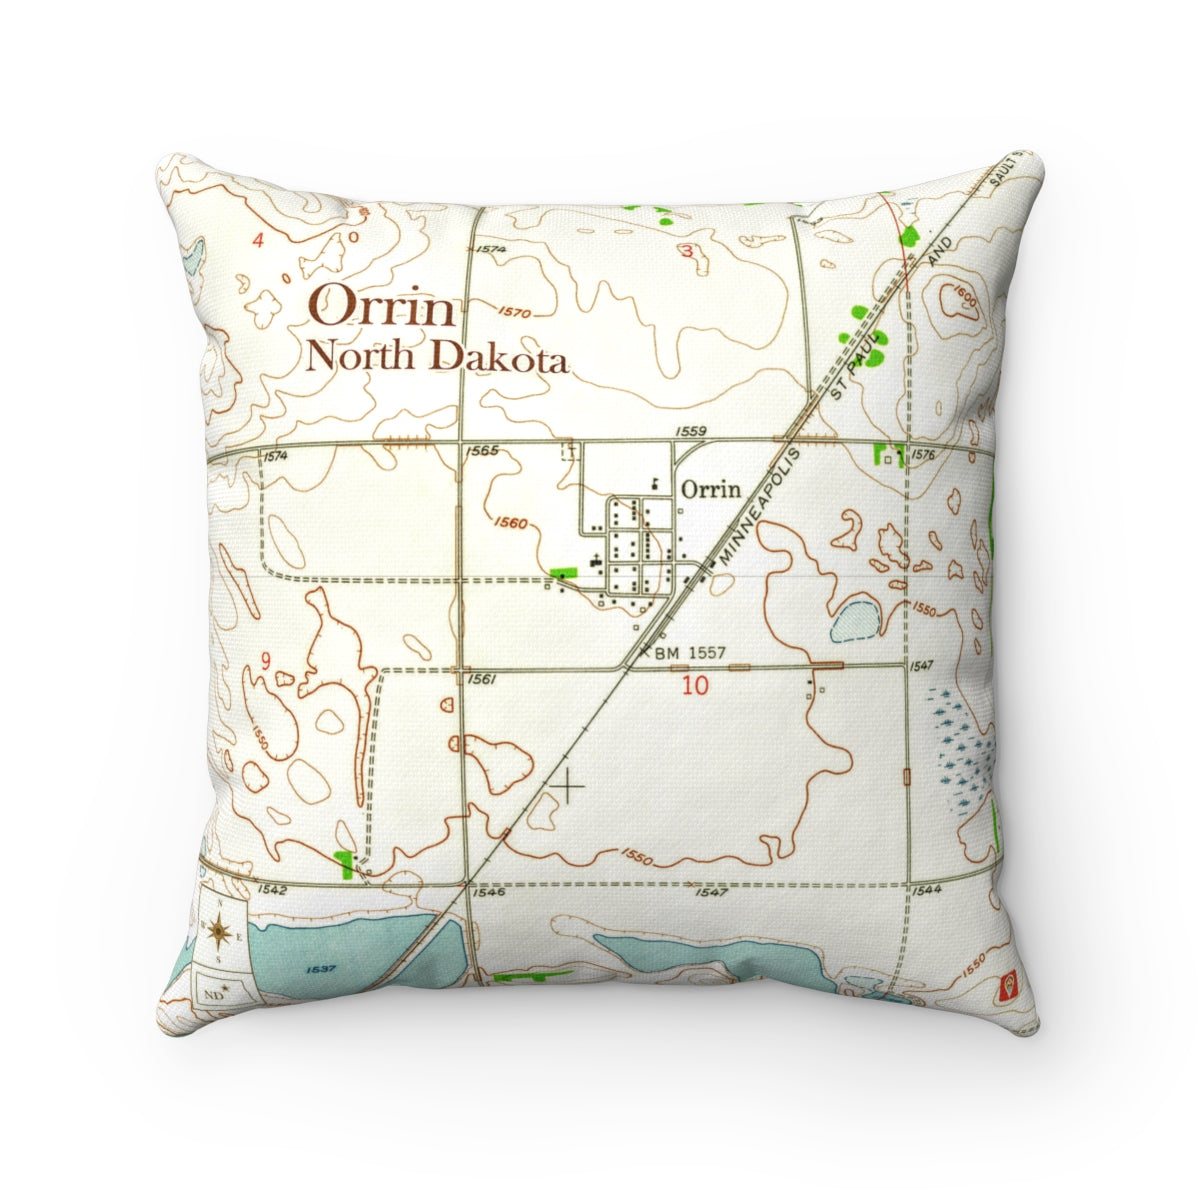 Orrin - North Dakota